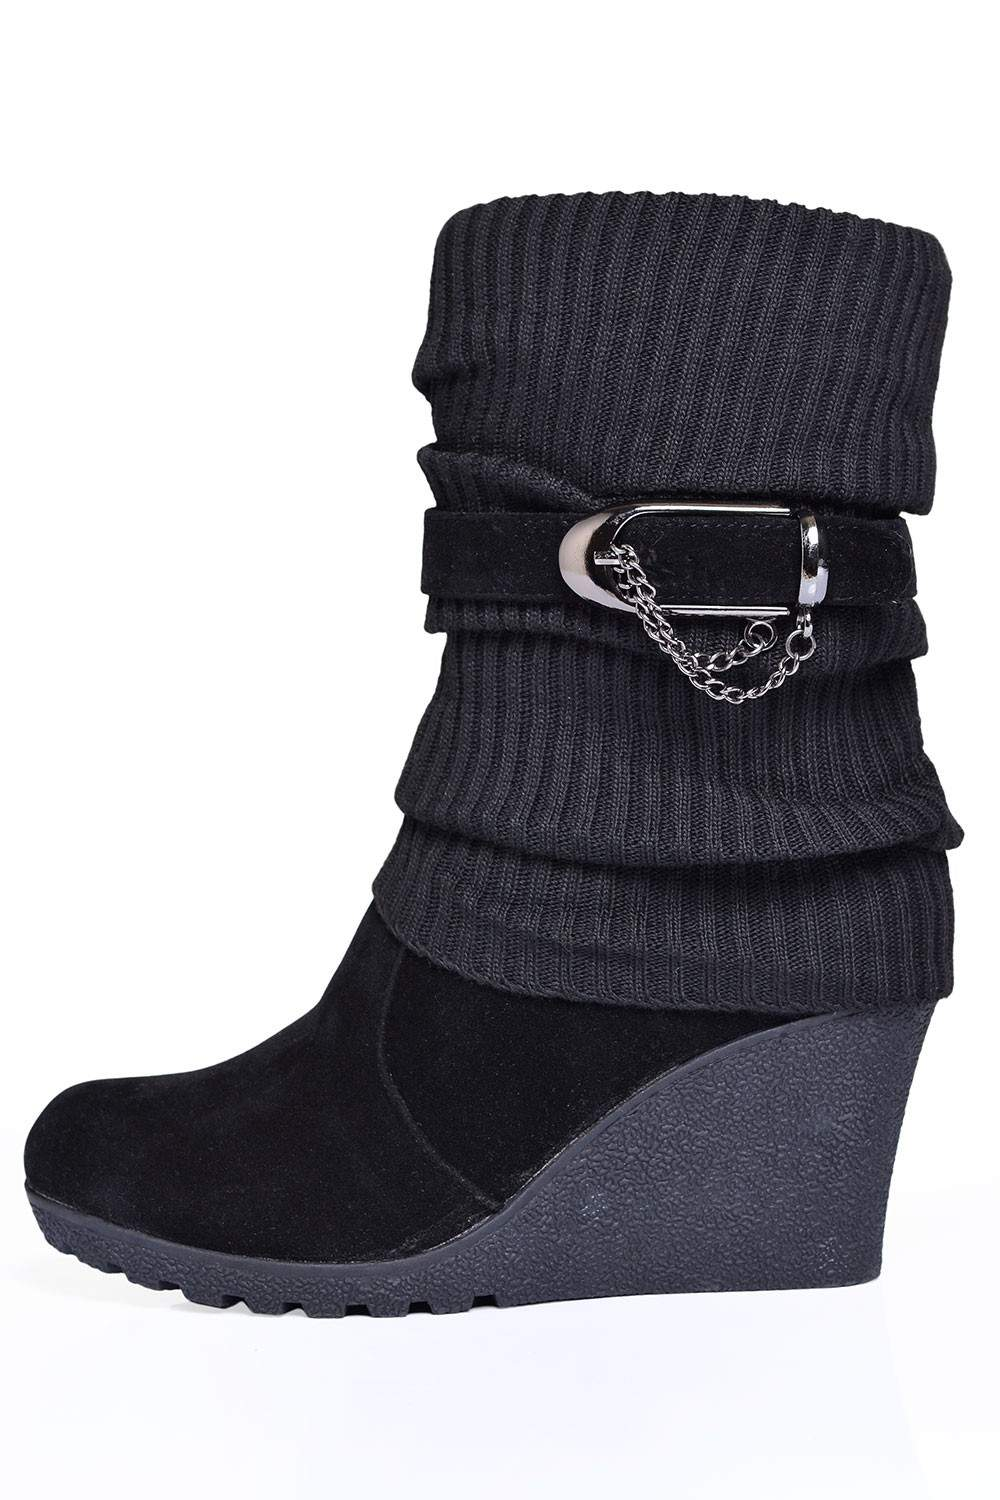 247 nene suede and knit wedge boots in black iclothing